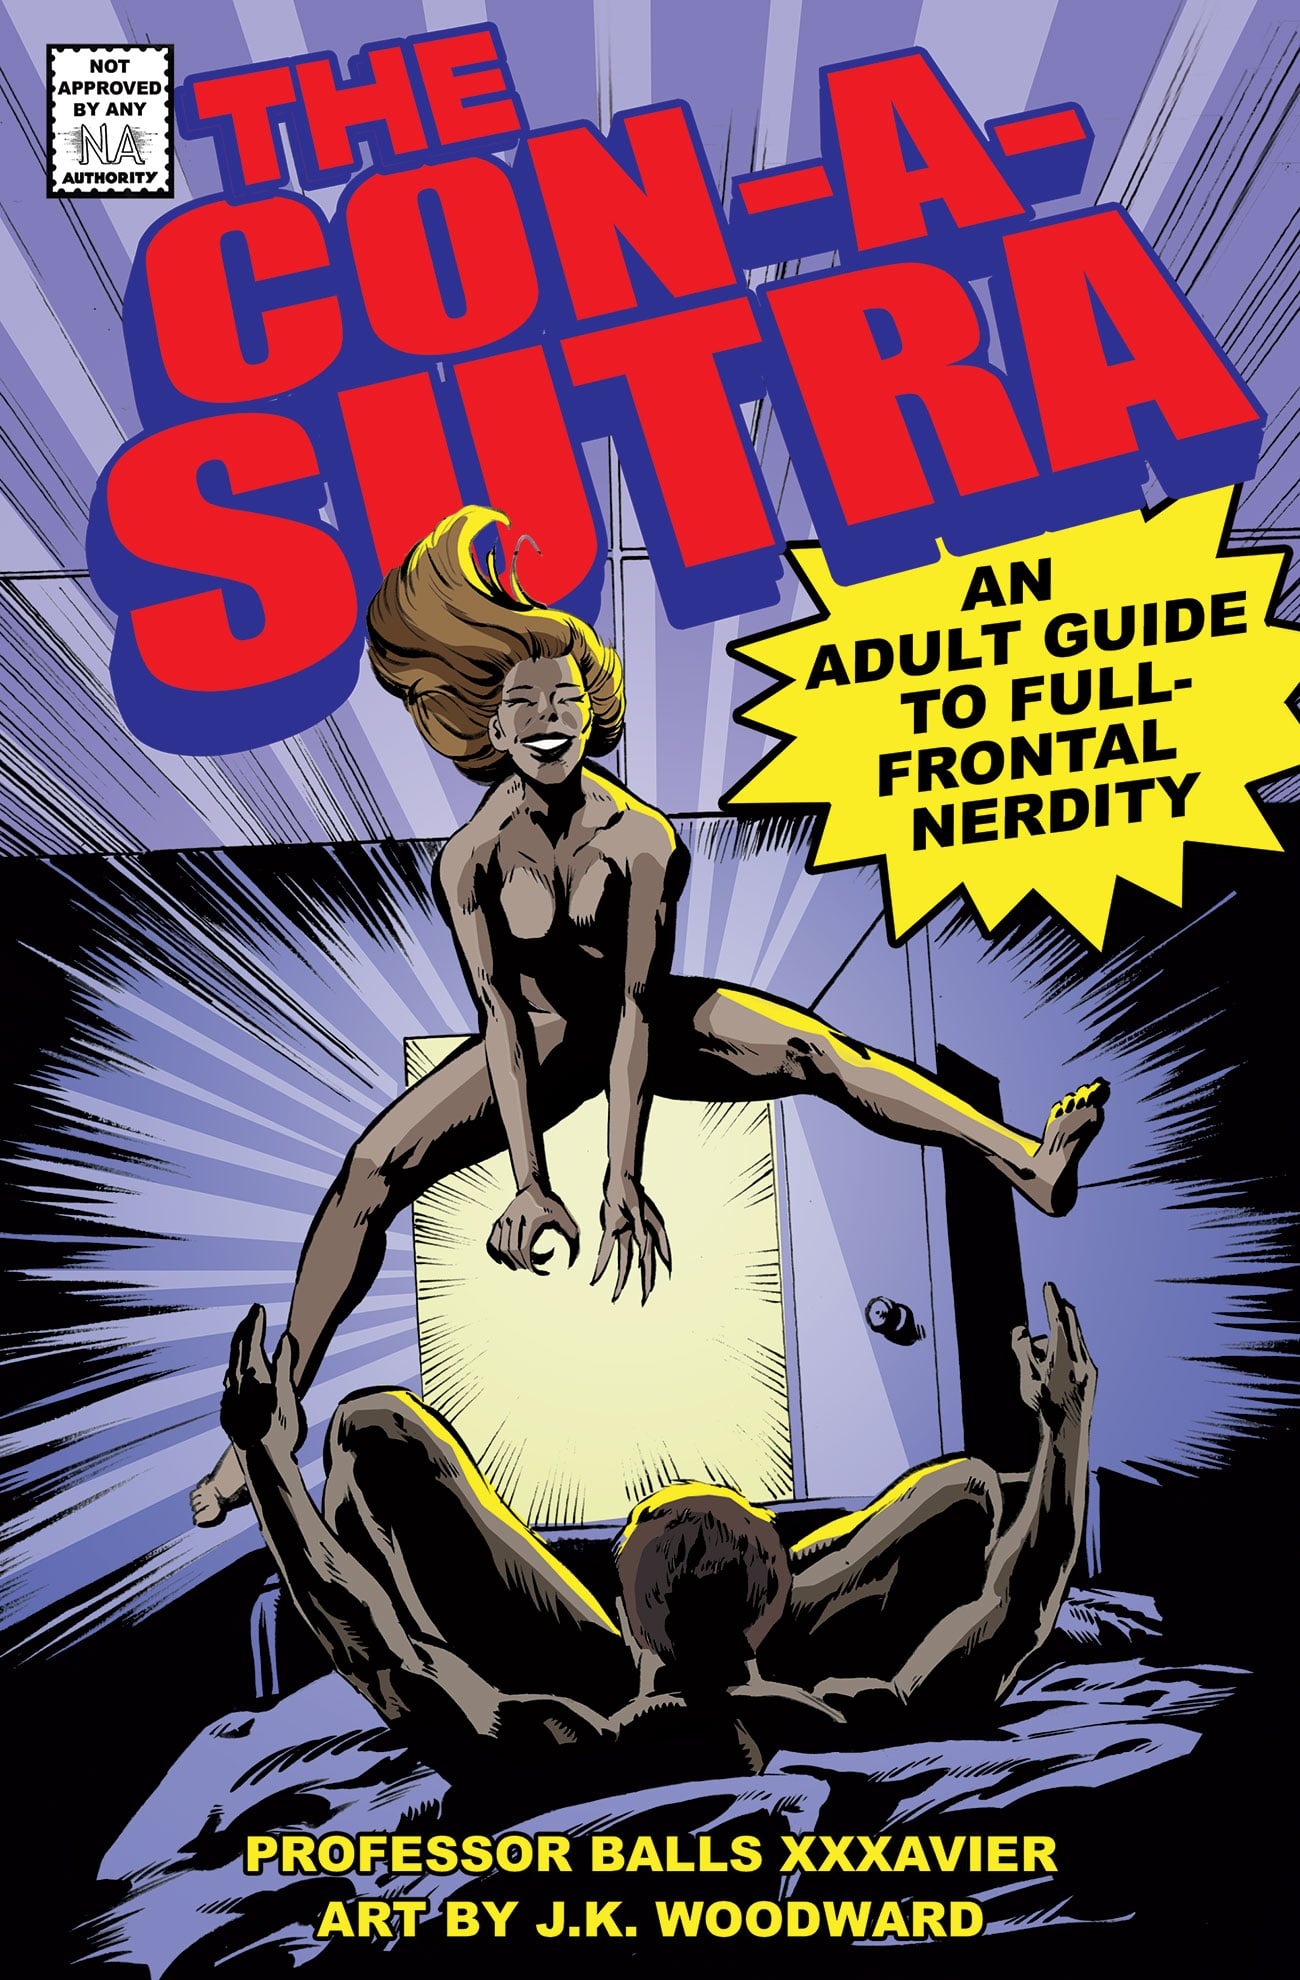 Book cover for The Con-a-Sutra: An Adult Guide to Full-Frontal Nerdity